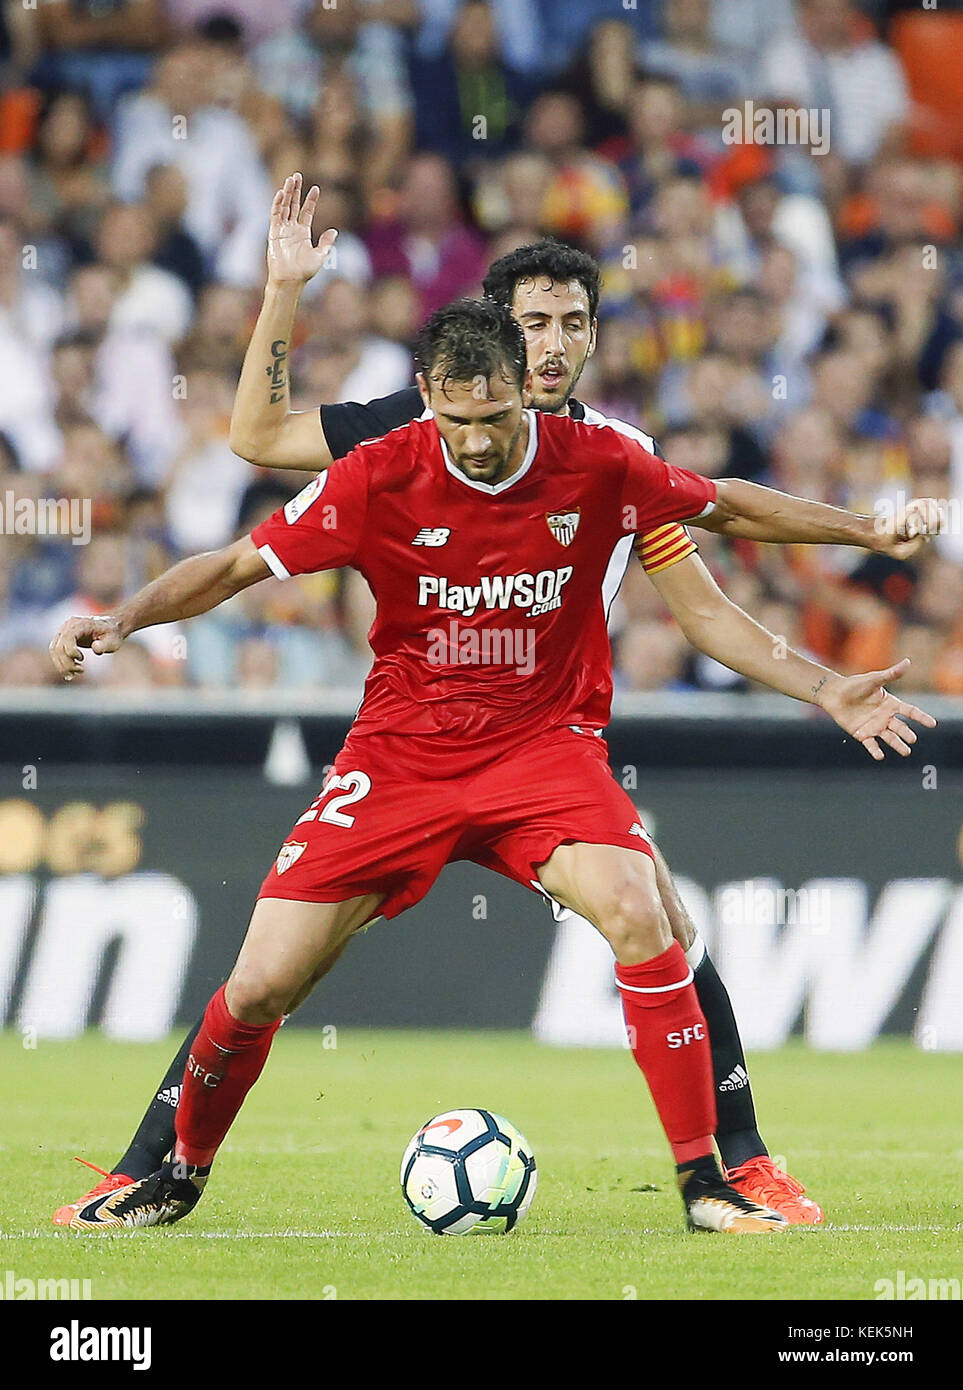 Sevilla CD´s player Franco Damian and Valencia´s Dani Parejo (behind) the Primera Division LaLiga match - Stock Image